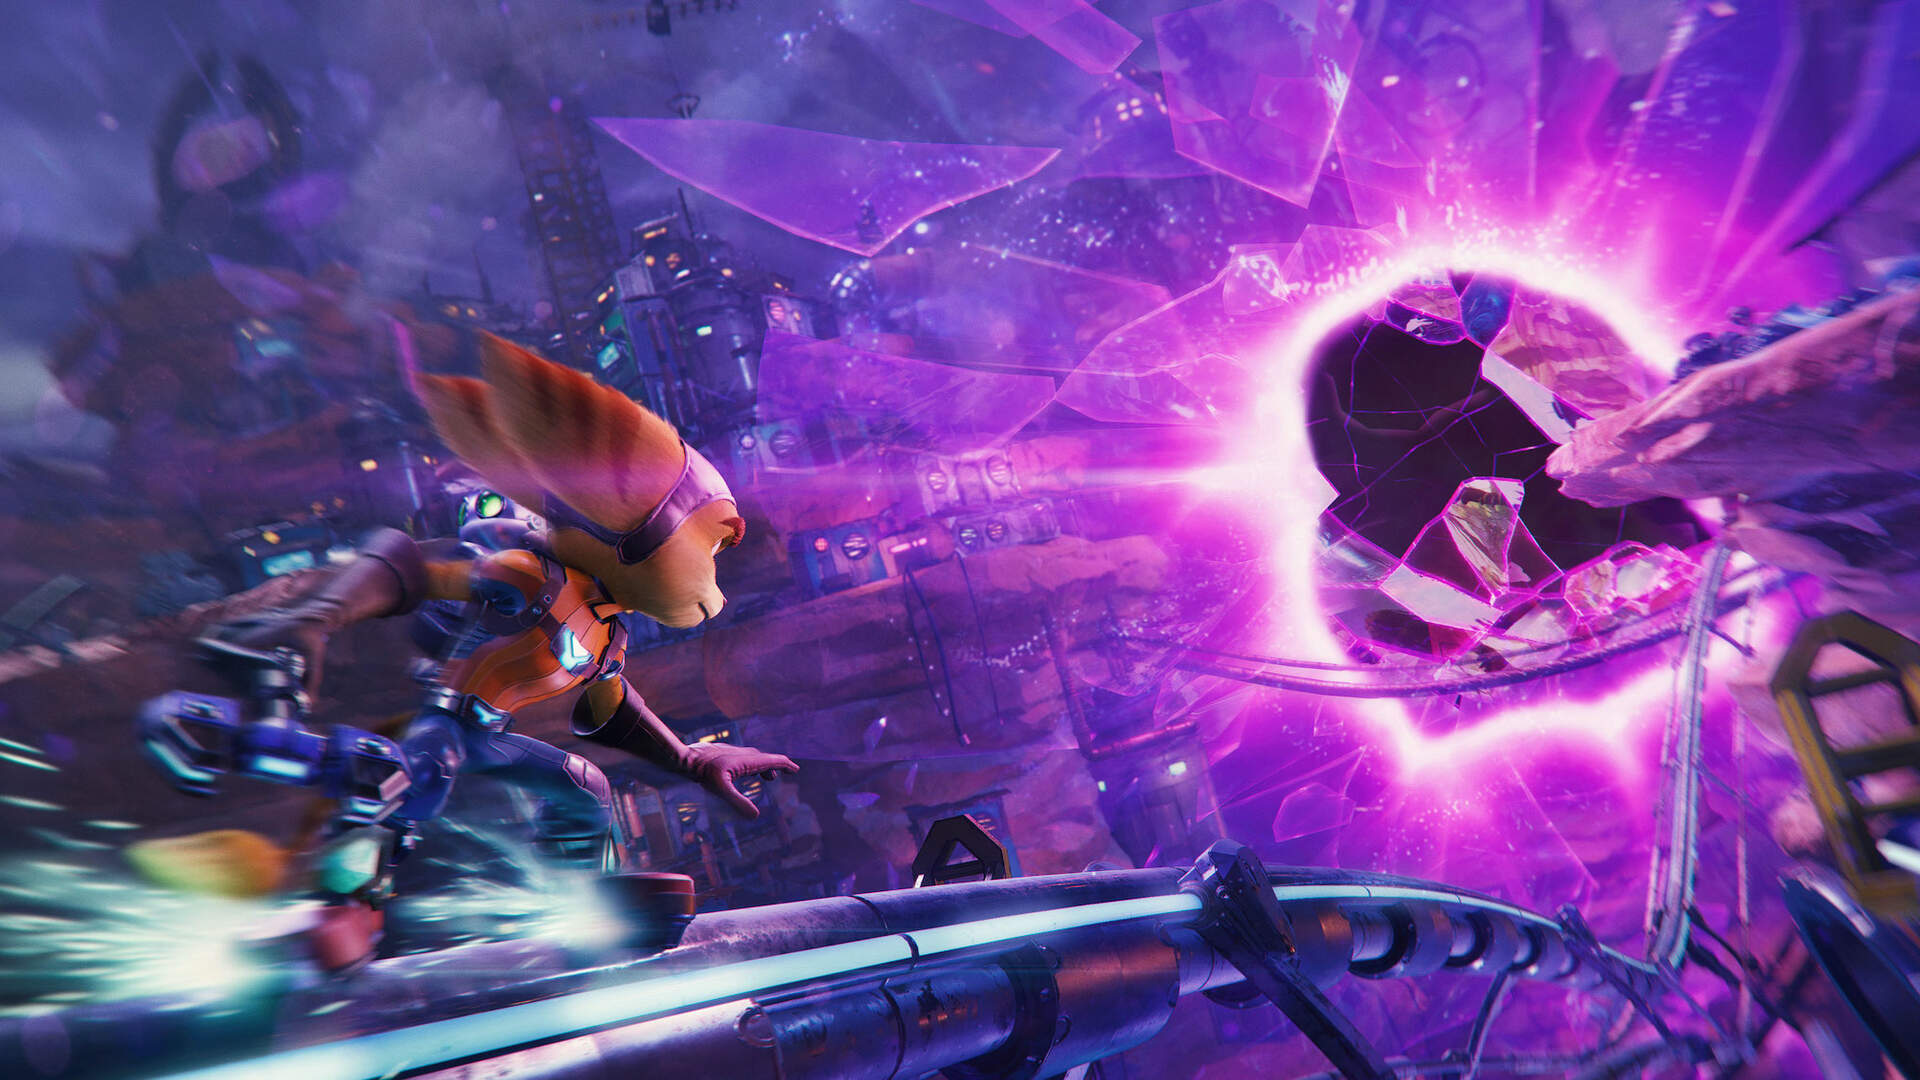 The PS5's New Ratchet & Clank Will Premiere New Footage at Gamescom This Week